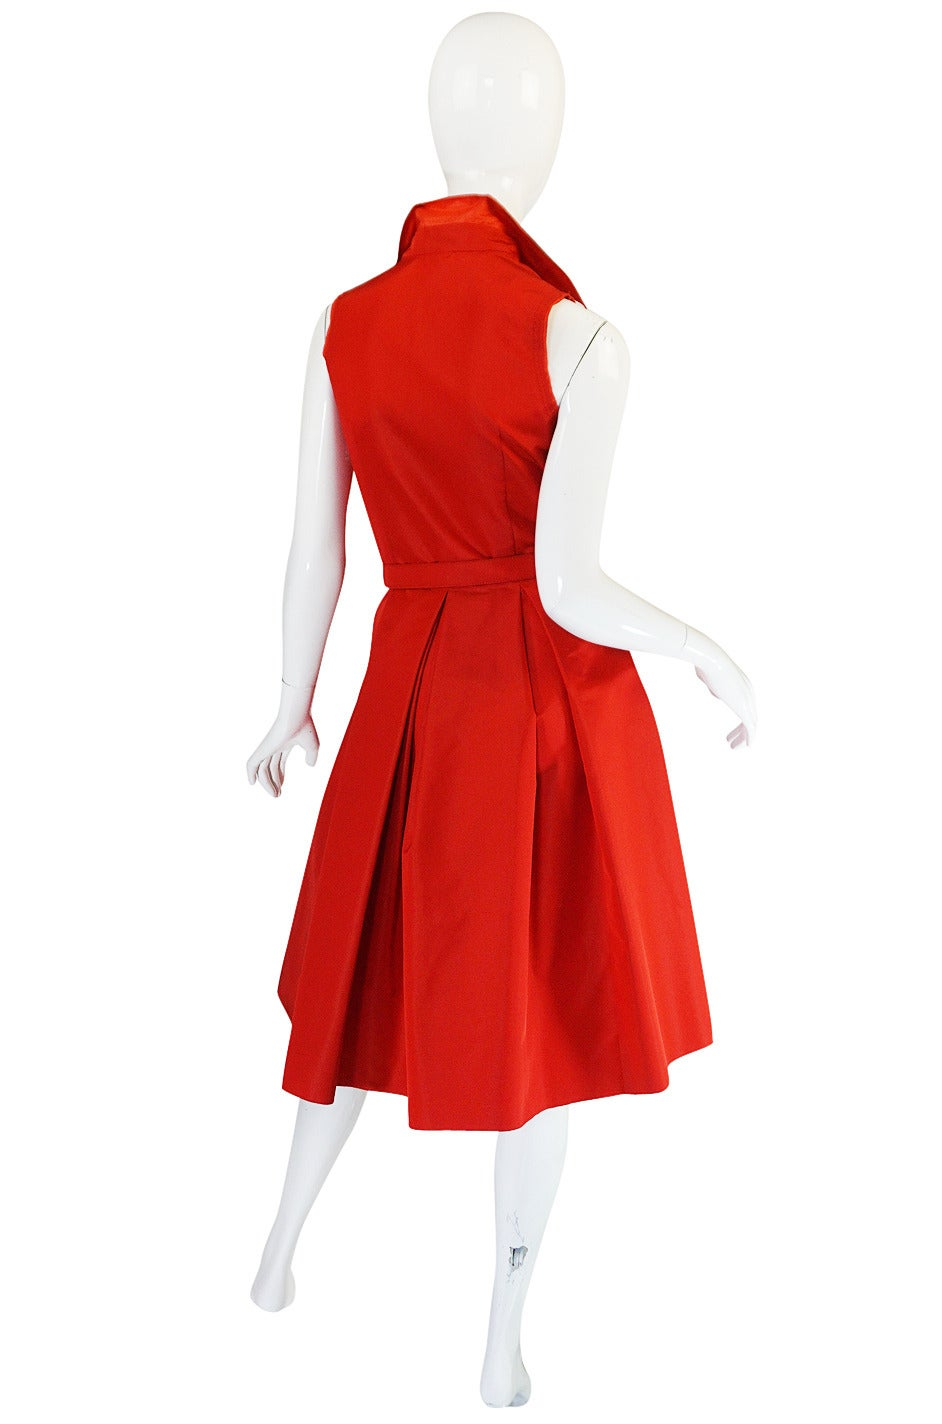 If there was ever a dress that one could imagine on Grace Kelly I think this is it. It has a definitive retro feel but in a thoroughly modern way. I love the crisp taffeta used - it helps to hold the shape and that amazing deep pleating on the skirt